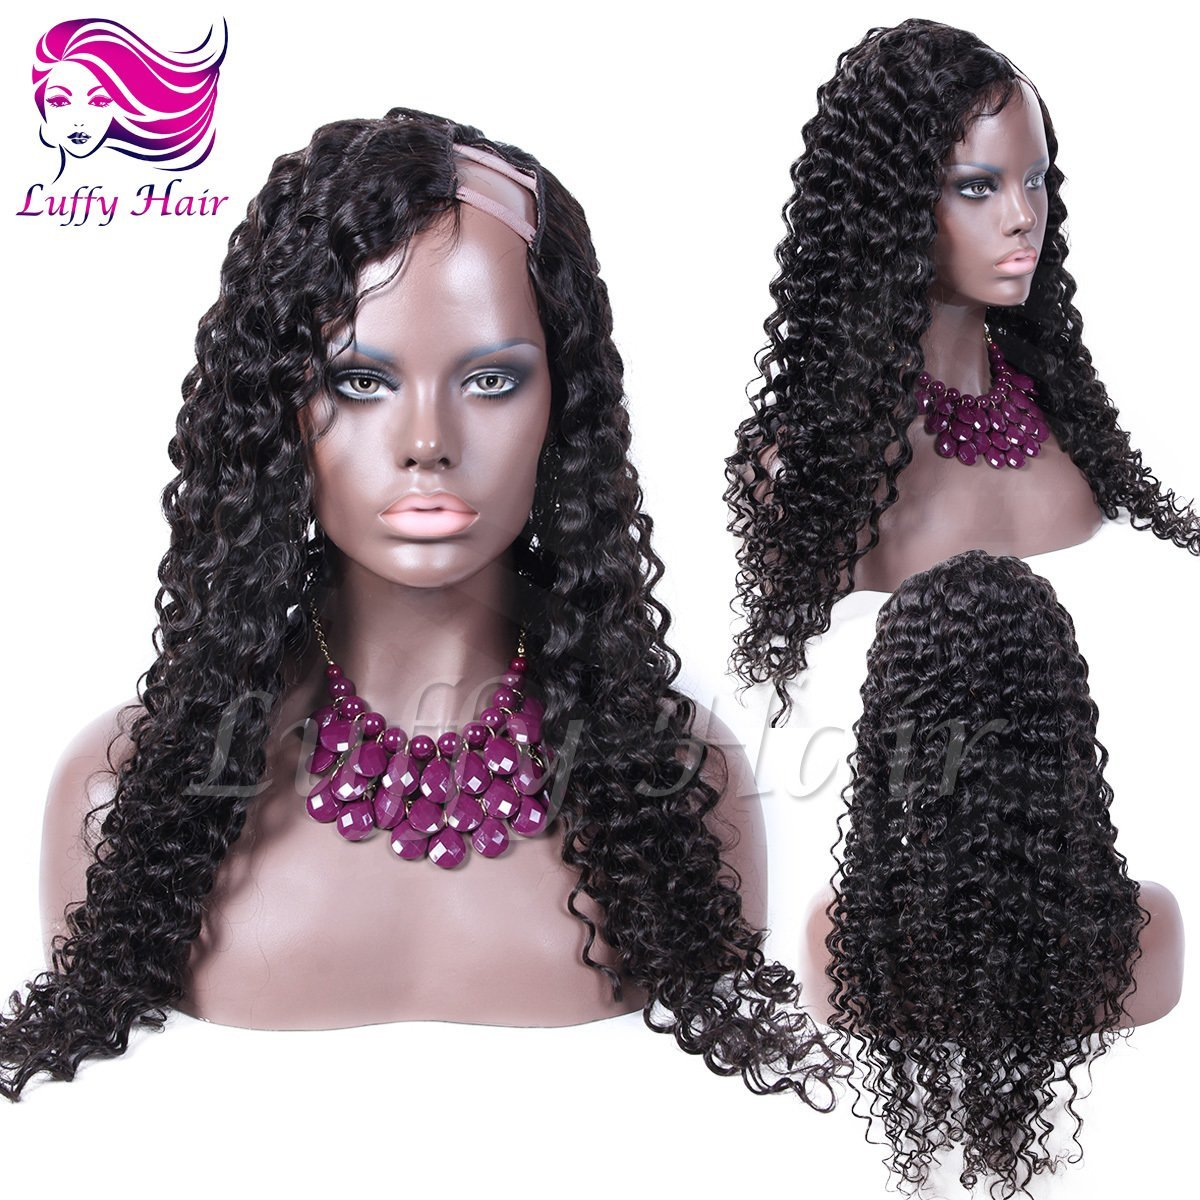 8A Virgin Human Hair Curly U Part Wig - KWU045